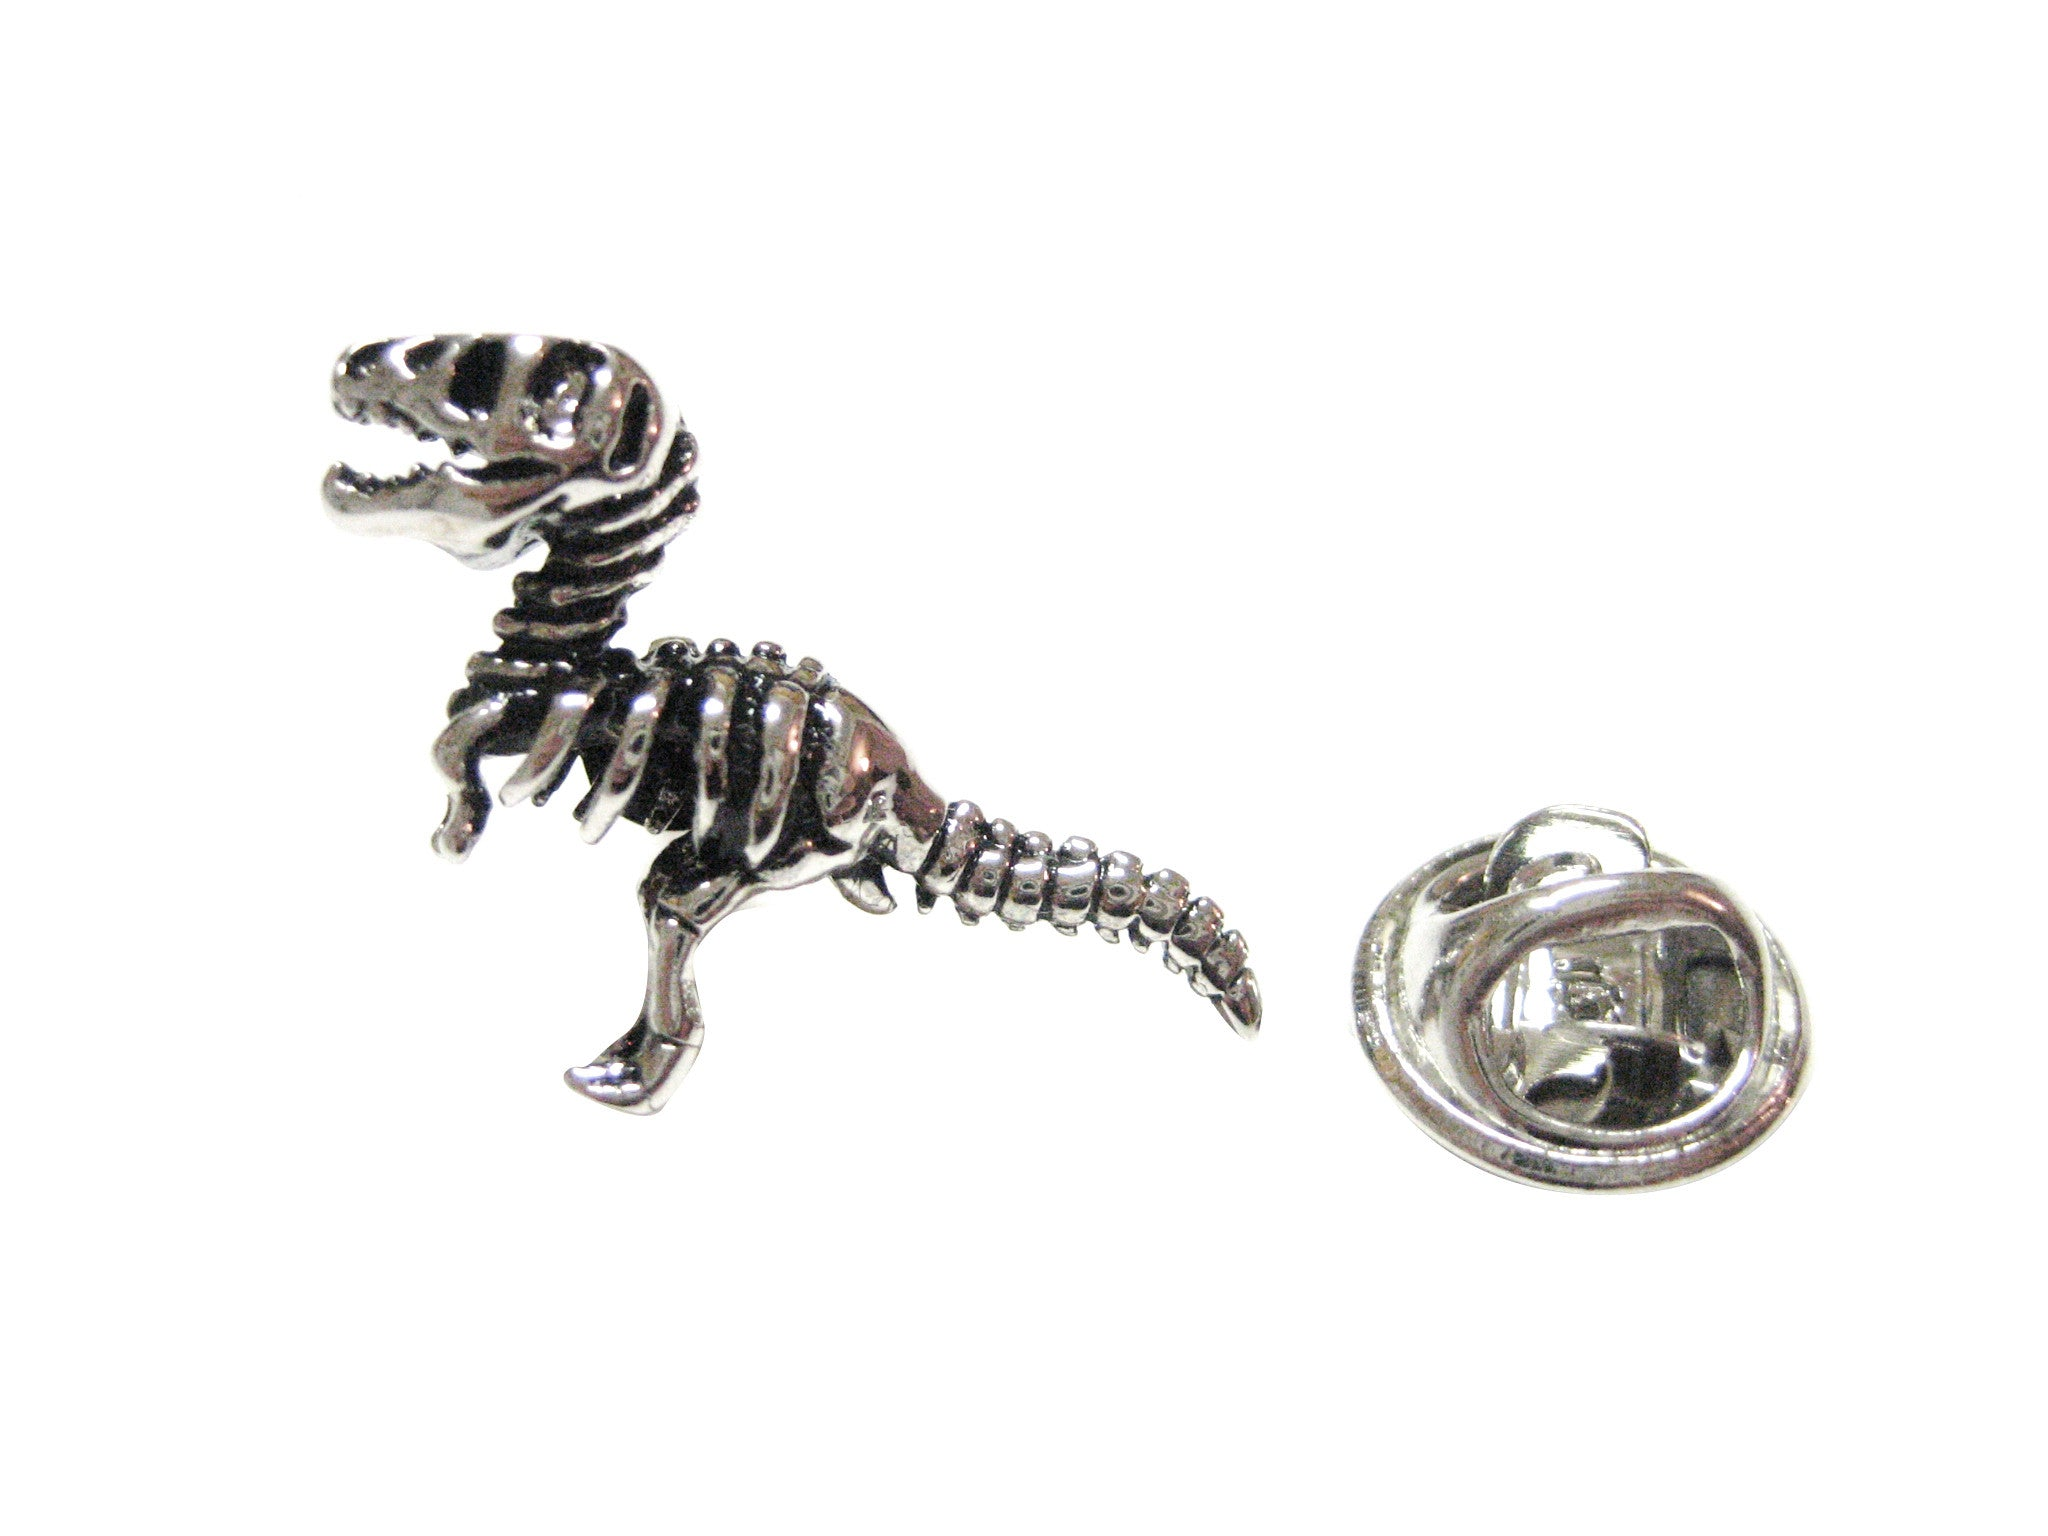 Dinosaur Fossil Skeleton Lapel Pin